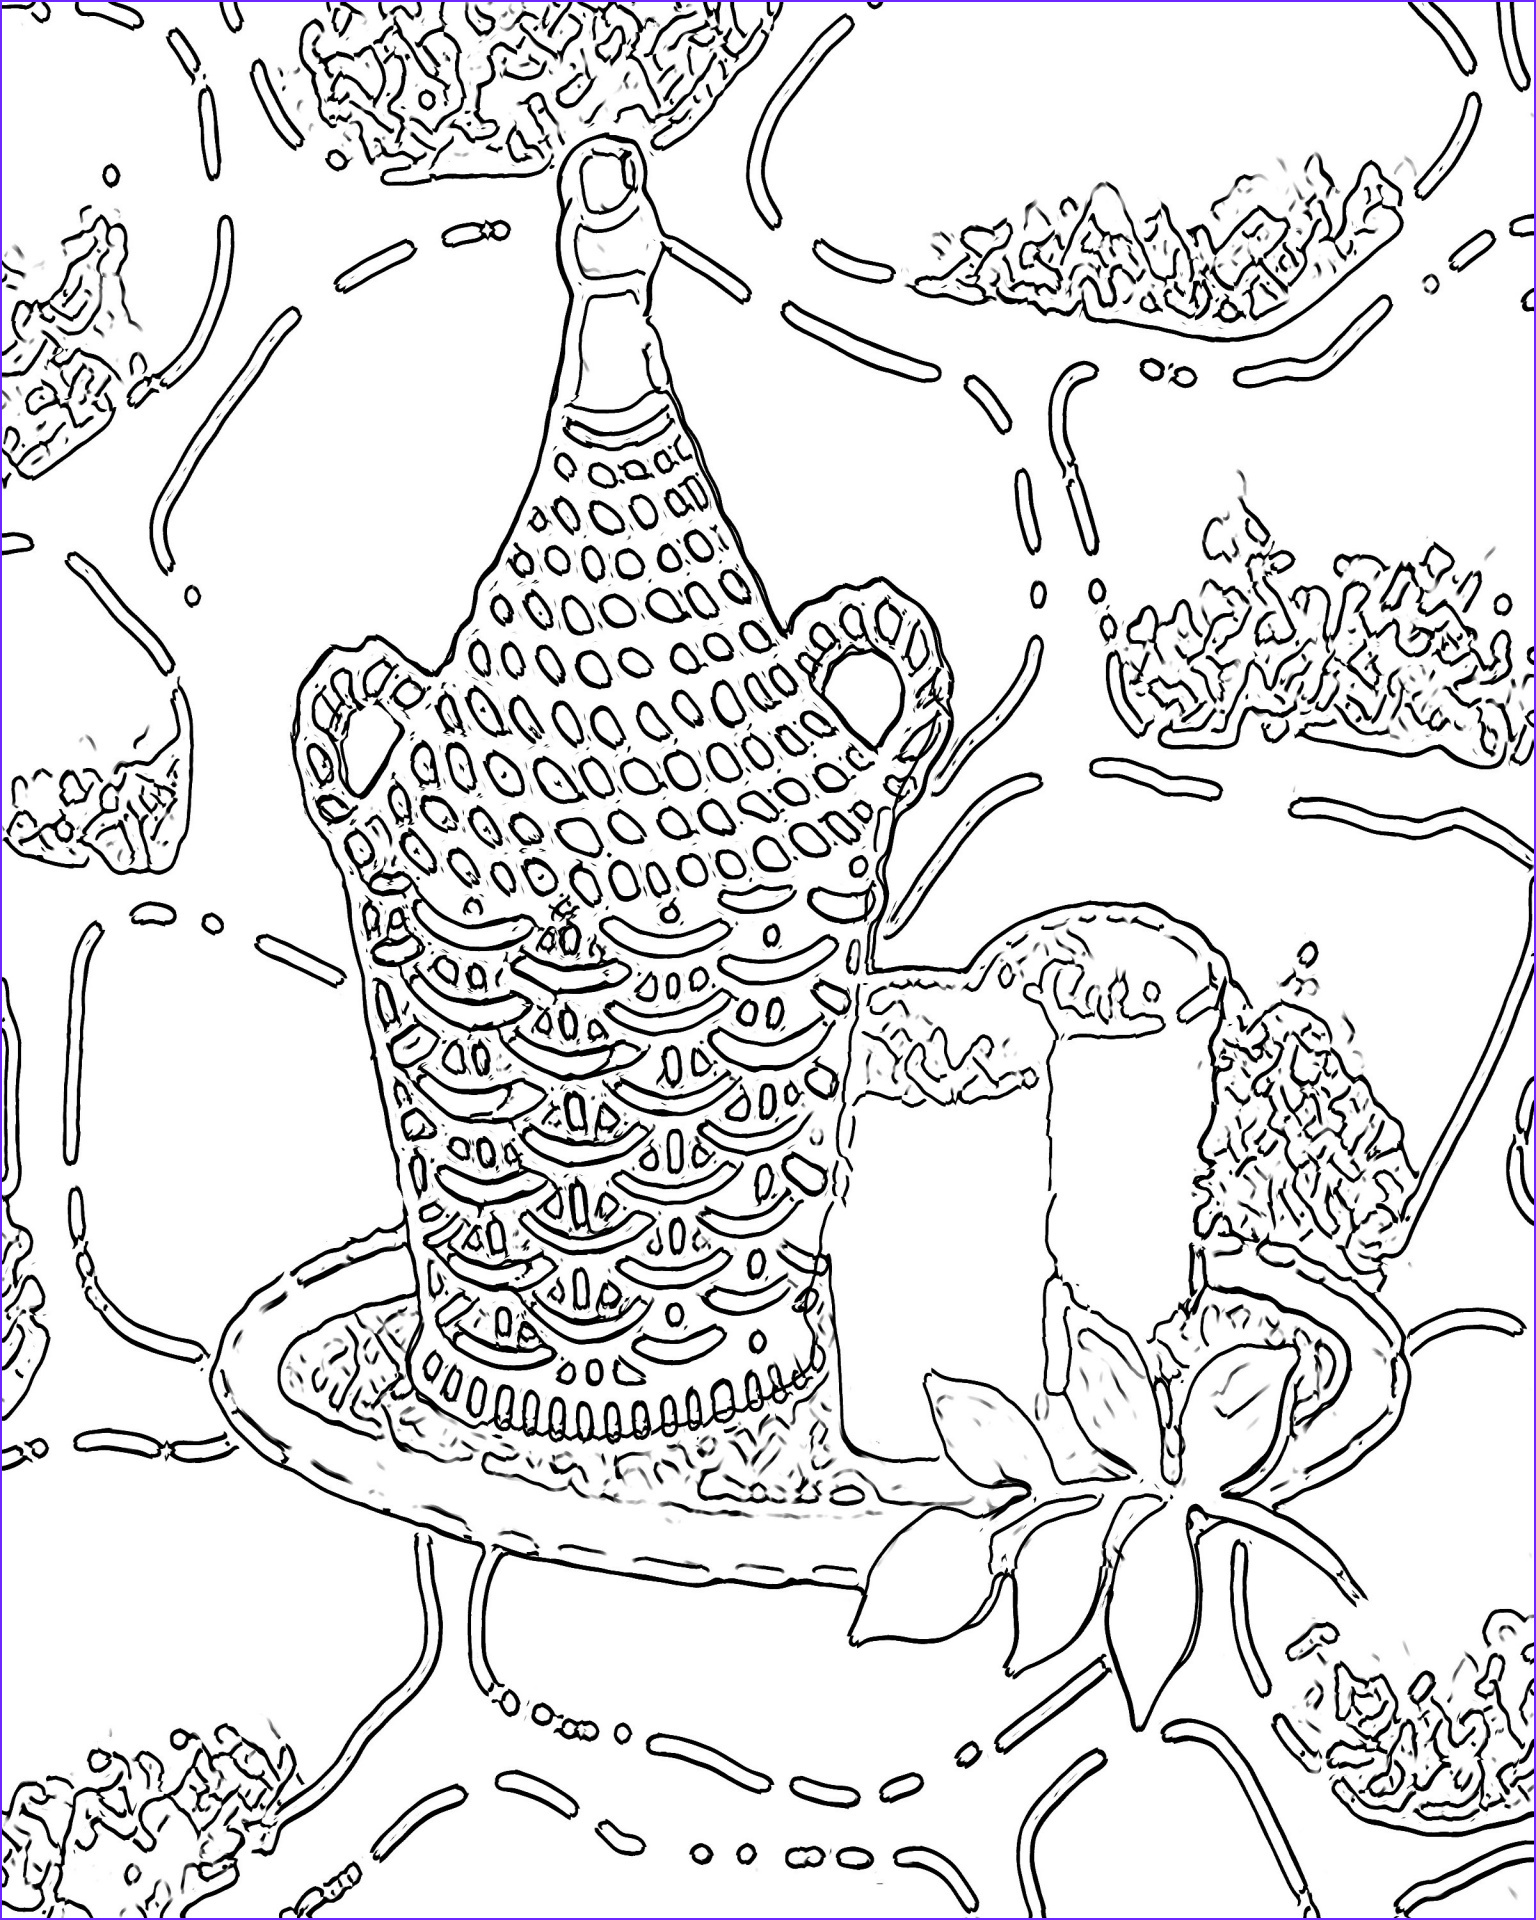 Coloring Pages Printable Adults New Photos Free Printable Abstract Coloring Pages for Adults